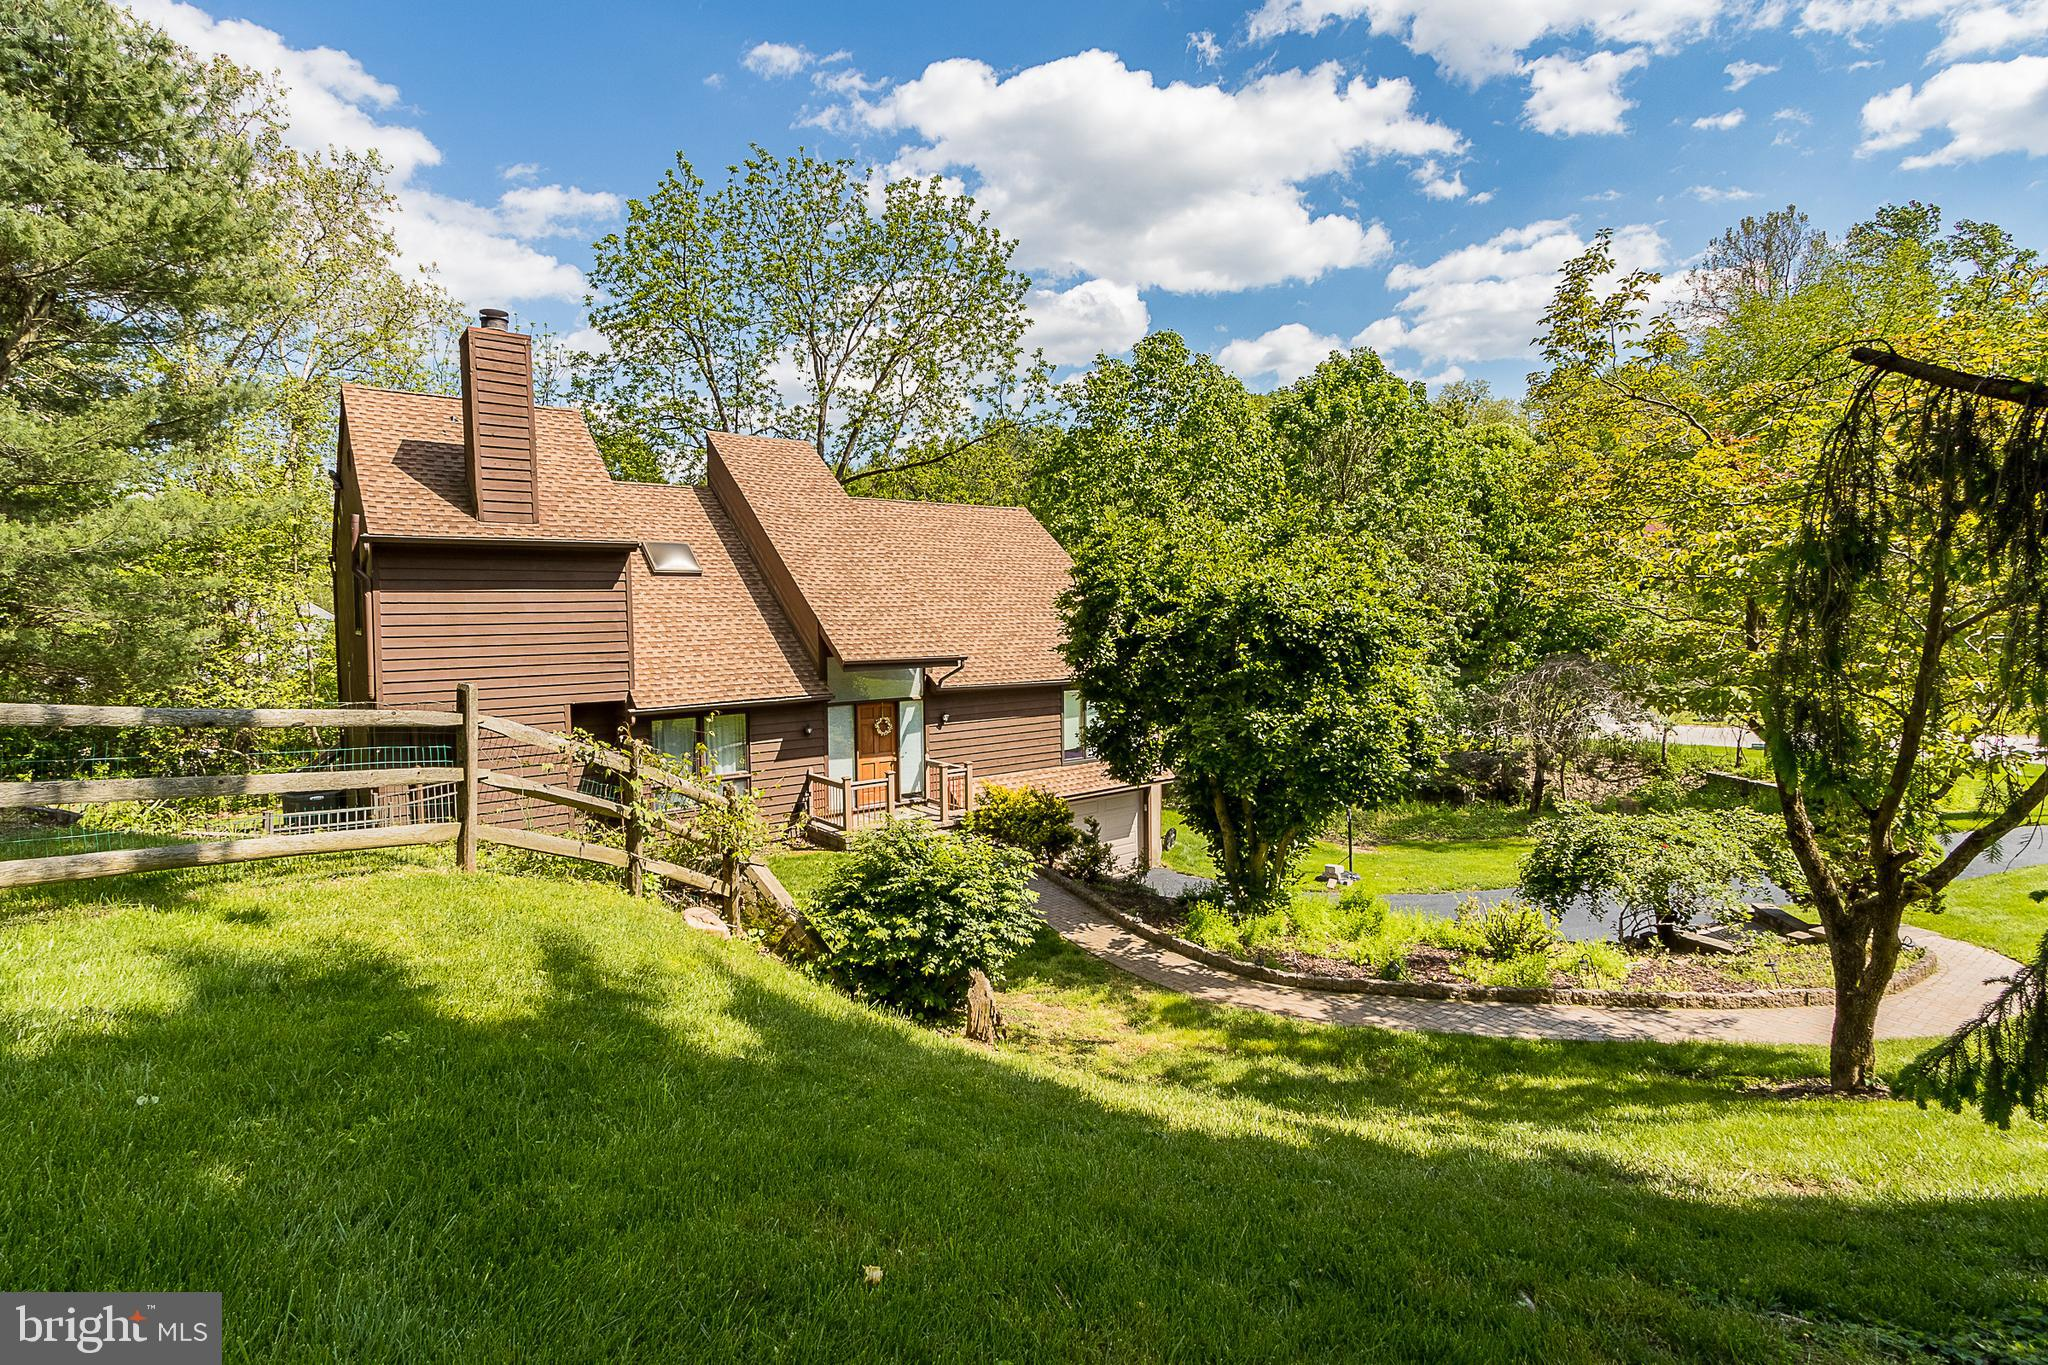 This spectacular home is located in the highly sought-after Radnor School District in Newtown Square. Rolling hills and lush lawns surround this stellar Cedar Siding home.  Open the door to a cathedral style entry with spacious rooms everywhere you turn.   An abundance of wood-framed windows and sliding glass doors allow in plenty of natural light and lead to the oversized 60ft Trex composite deck with breathtaking wooded views.  The comfort continues upstairs with generous sized bedrooms and dreams of relaxation in the soaking tub. Enjoy the benefits of the two car garage and long driveway and the basement which has plenty of storage and potential for a personal gym or additional living space.  Close to major highways, fine restaurants, and golf courses, this home truly has it all!